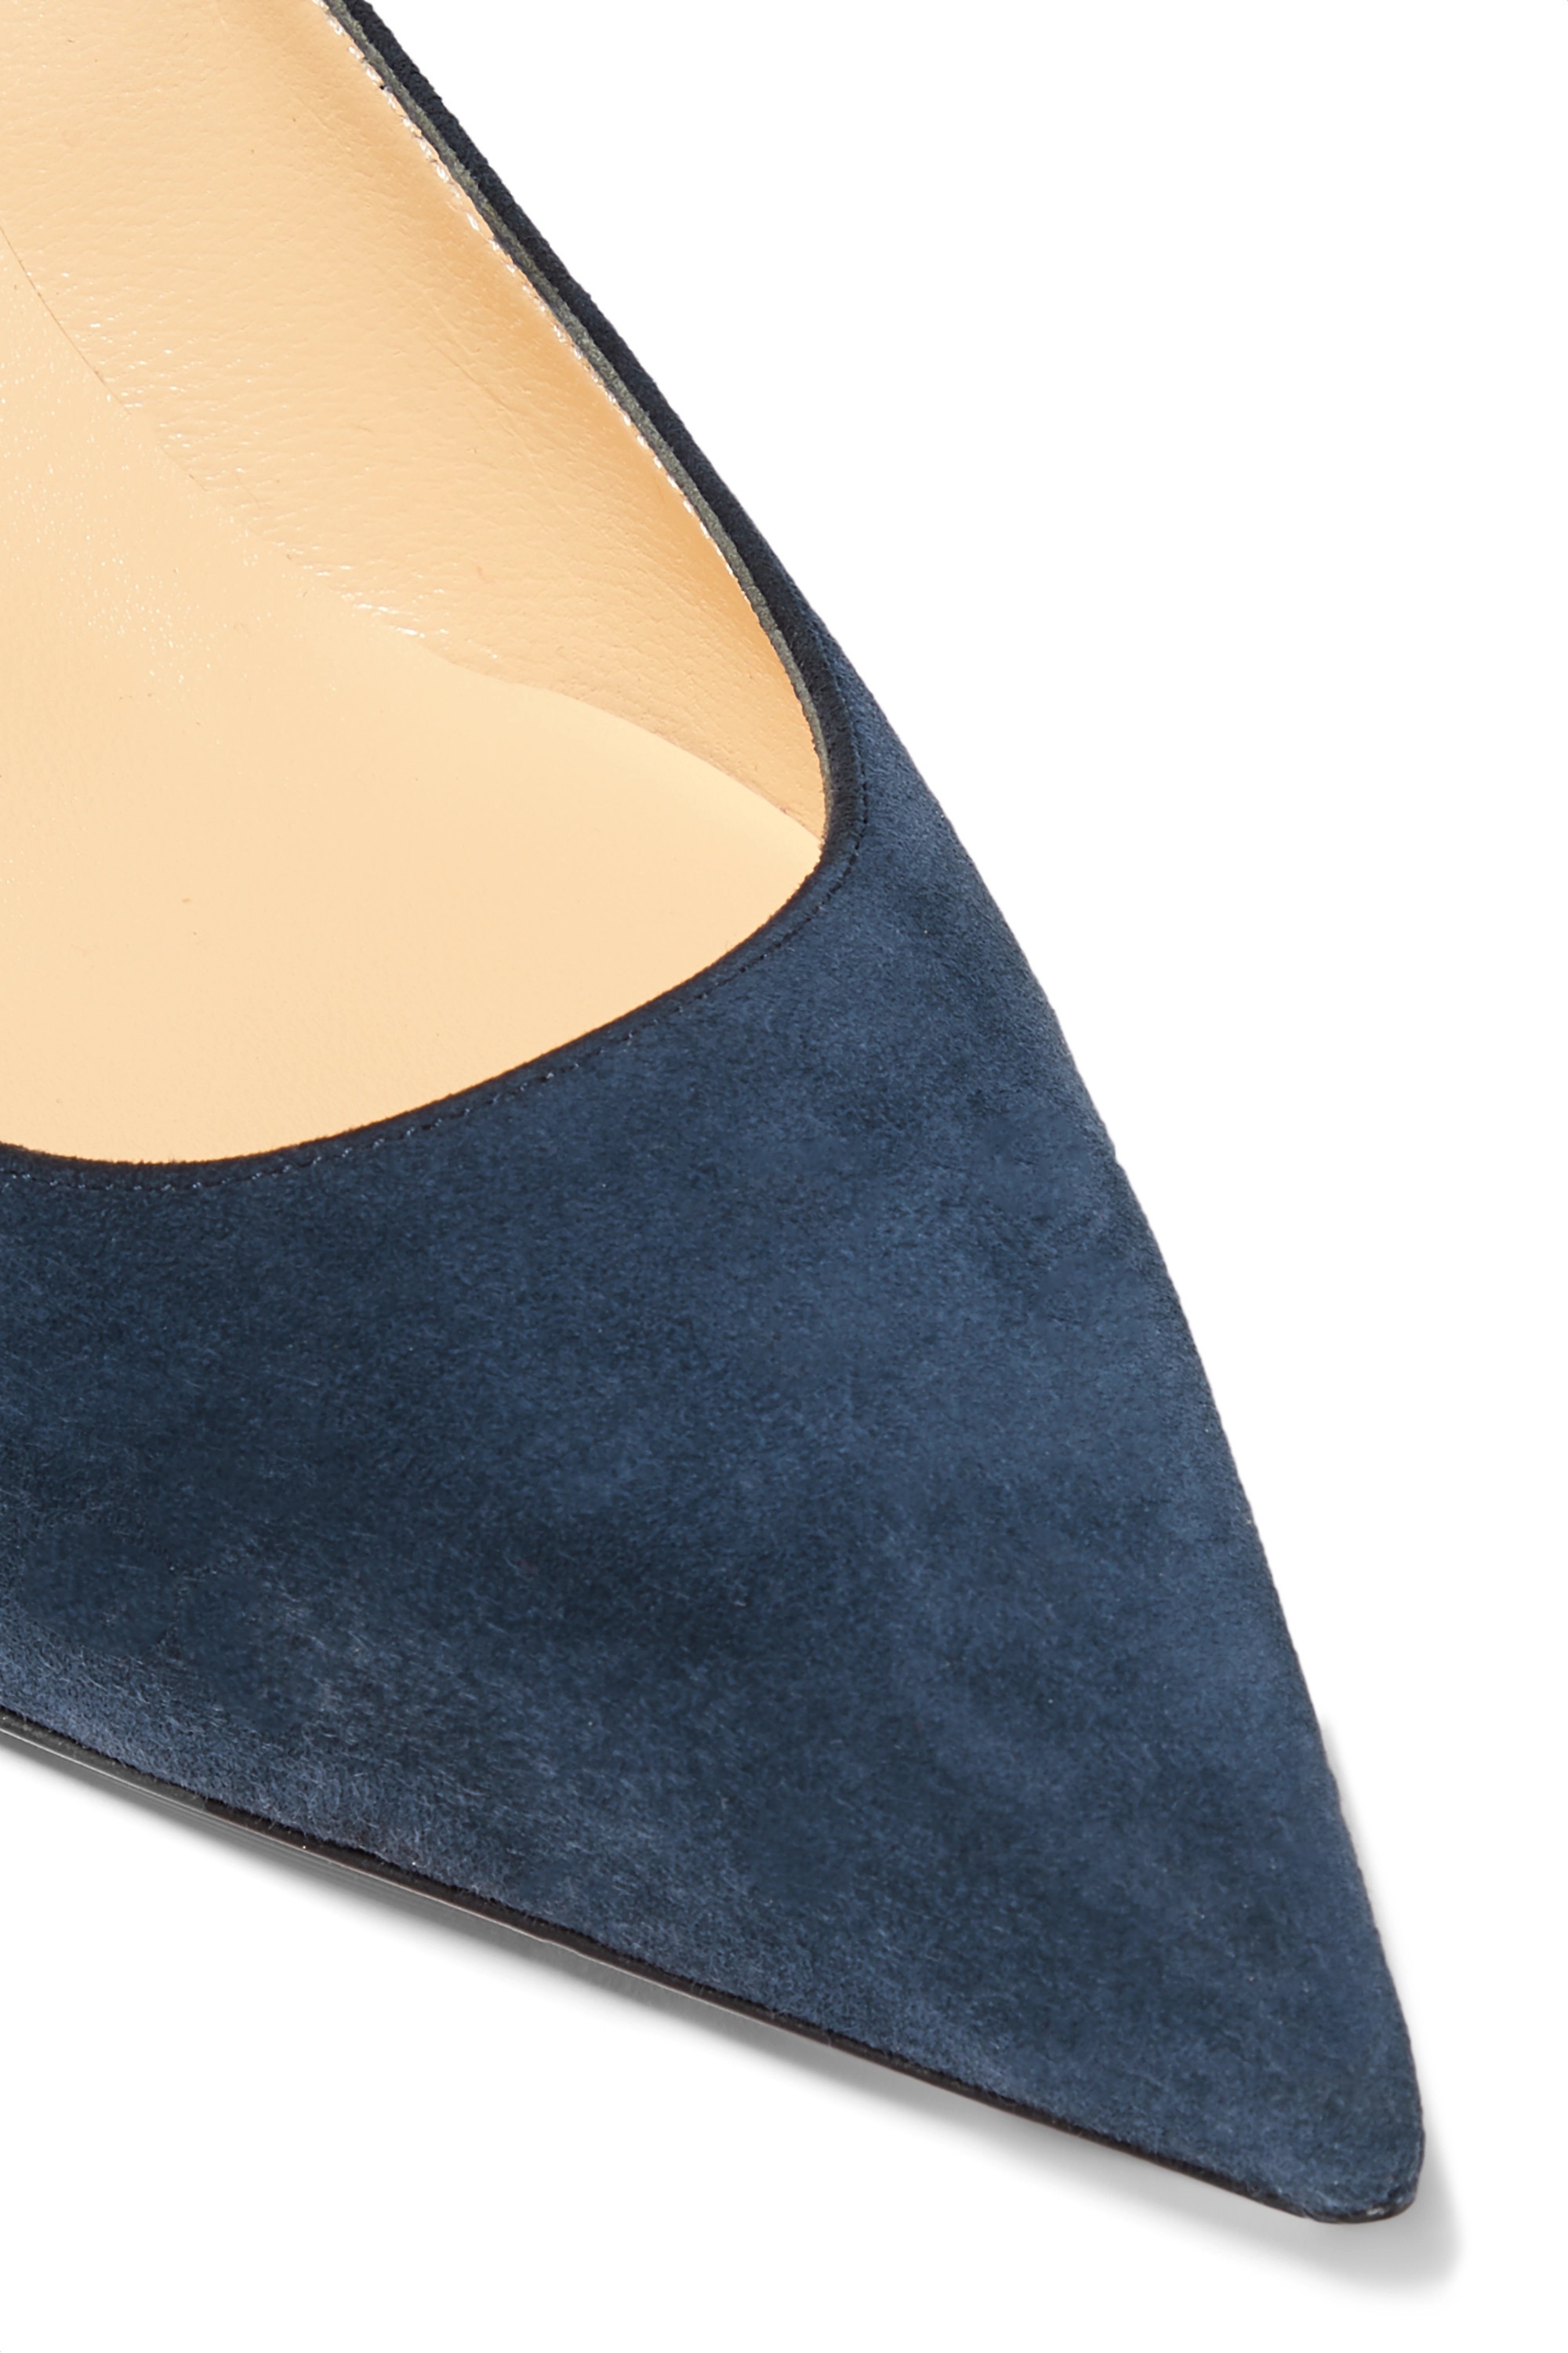 Christian Louboutin Kate 55 suede pumps